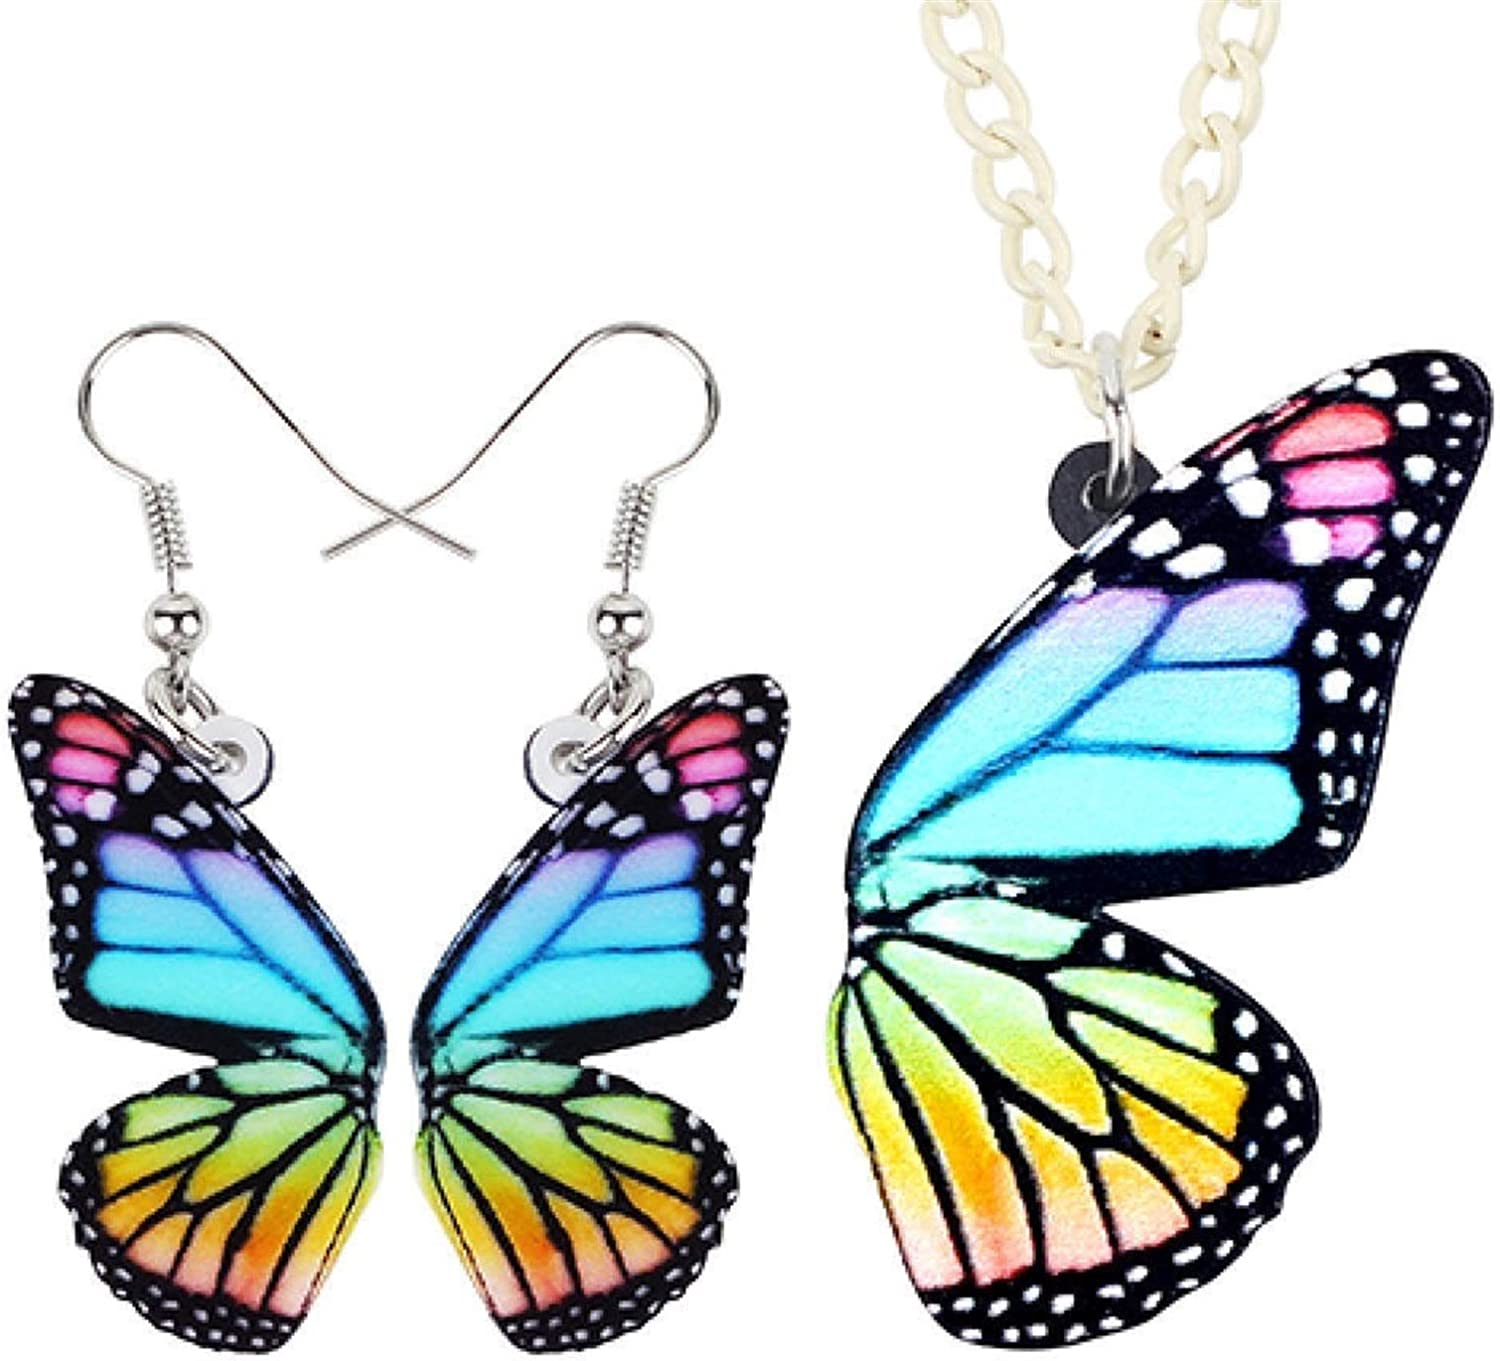 Acrylic Colorful Butterfly Earrings Pendant Hot Necklace Max 79% OFF Save money Collar